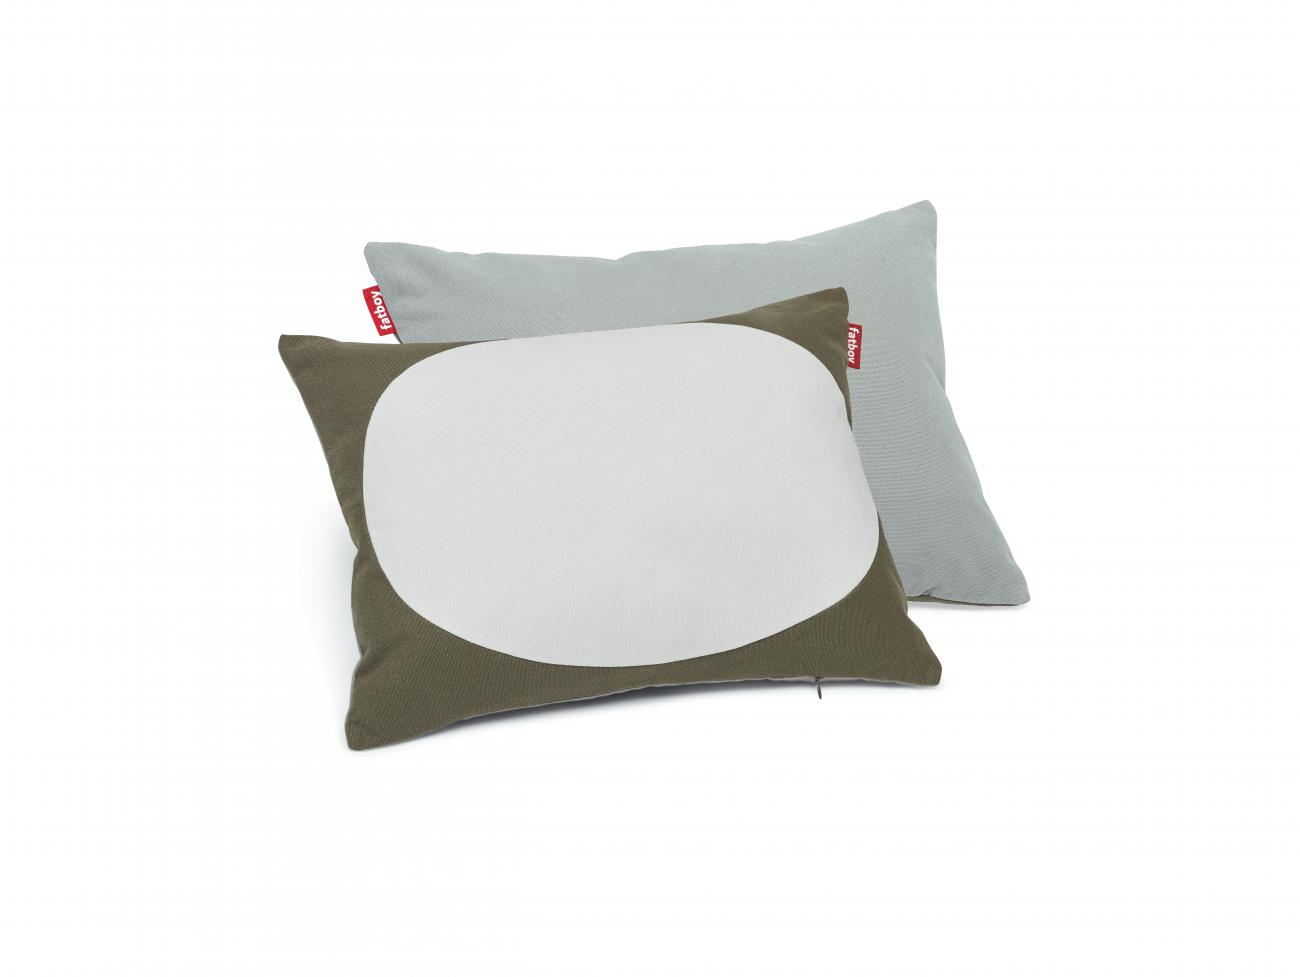 https://www.fundesign.nl/media/catalog/product/f/a/fatboy_pop-pillow_graphite_front-back_srgb.jpg